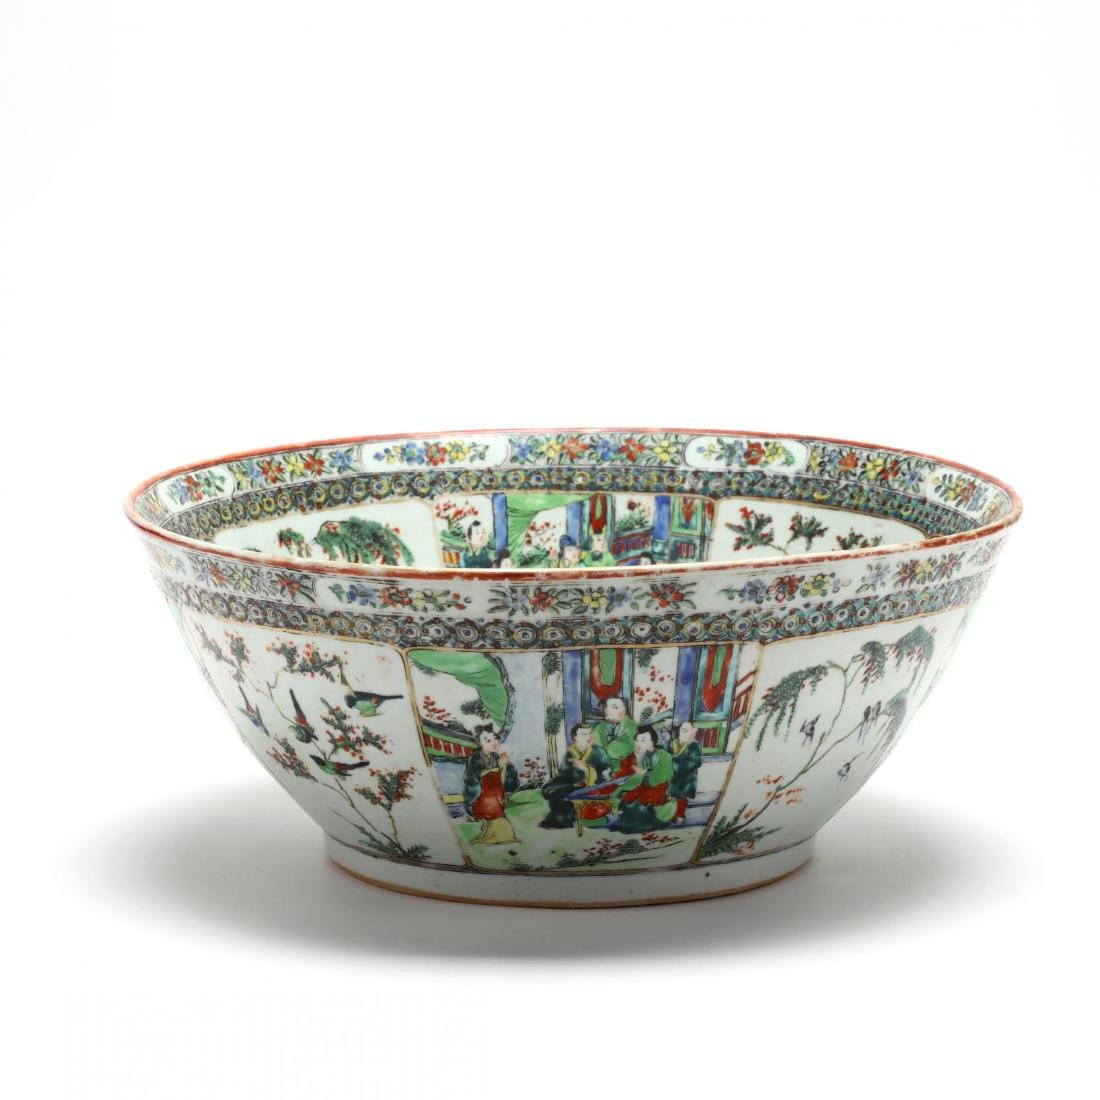 A Large Chinese Export Famille Verte Punch Bowl